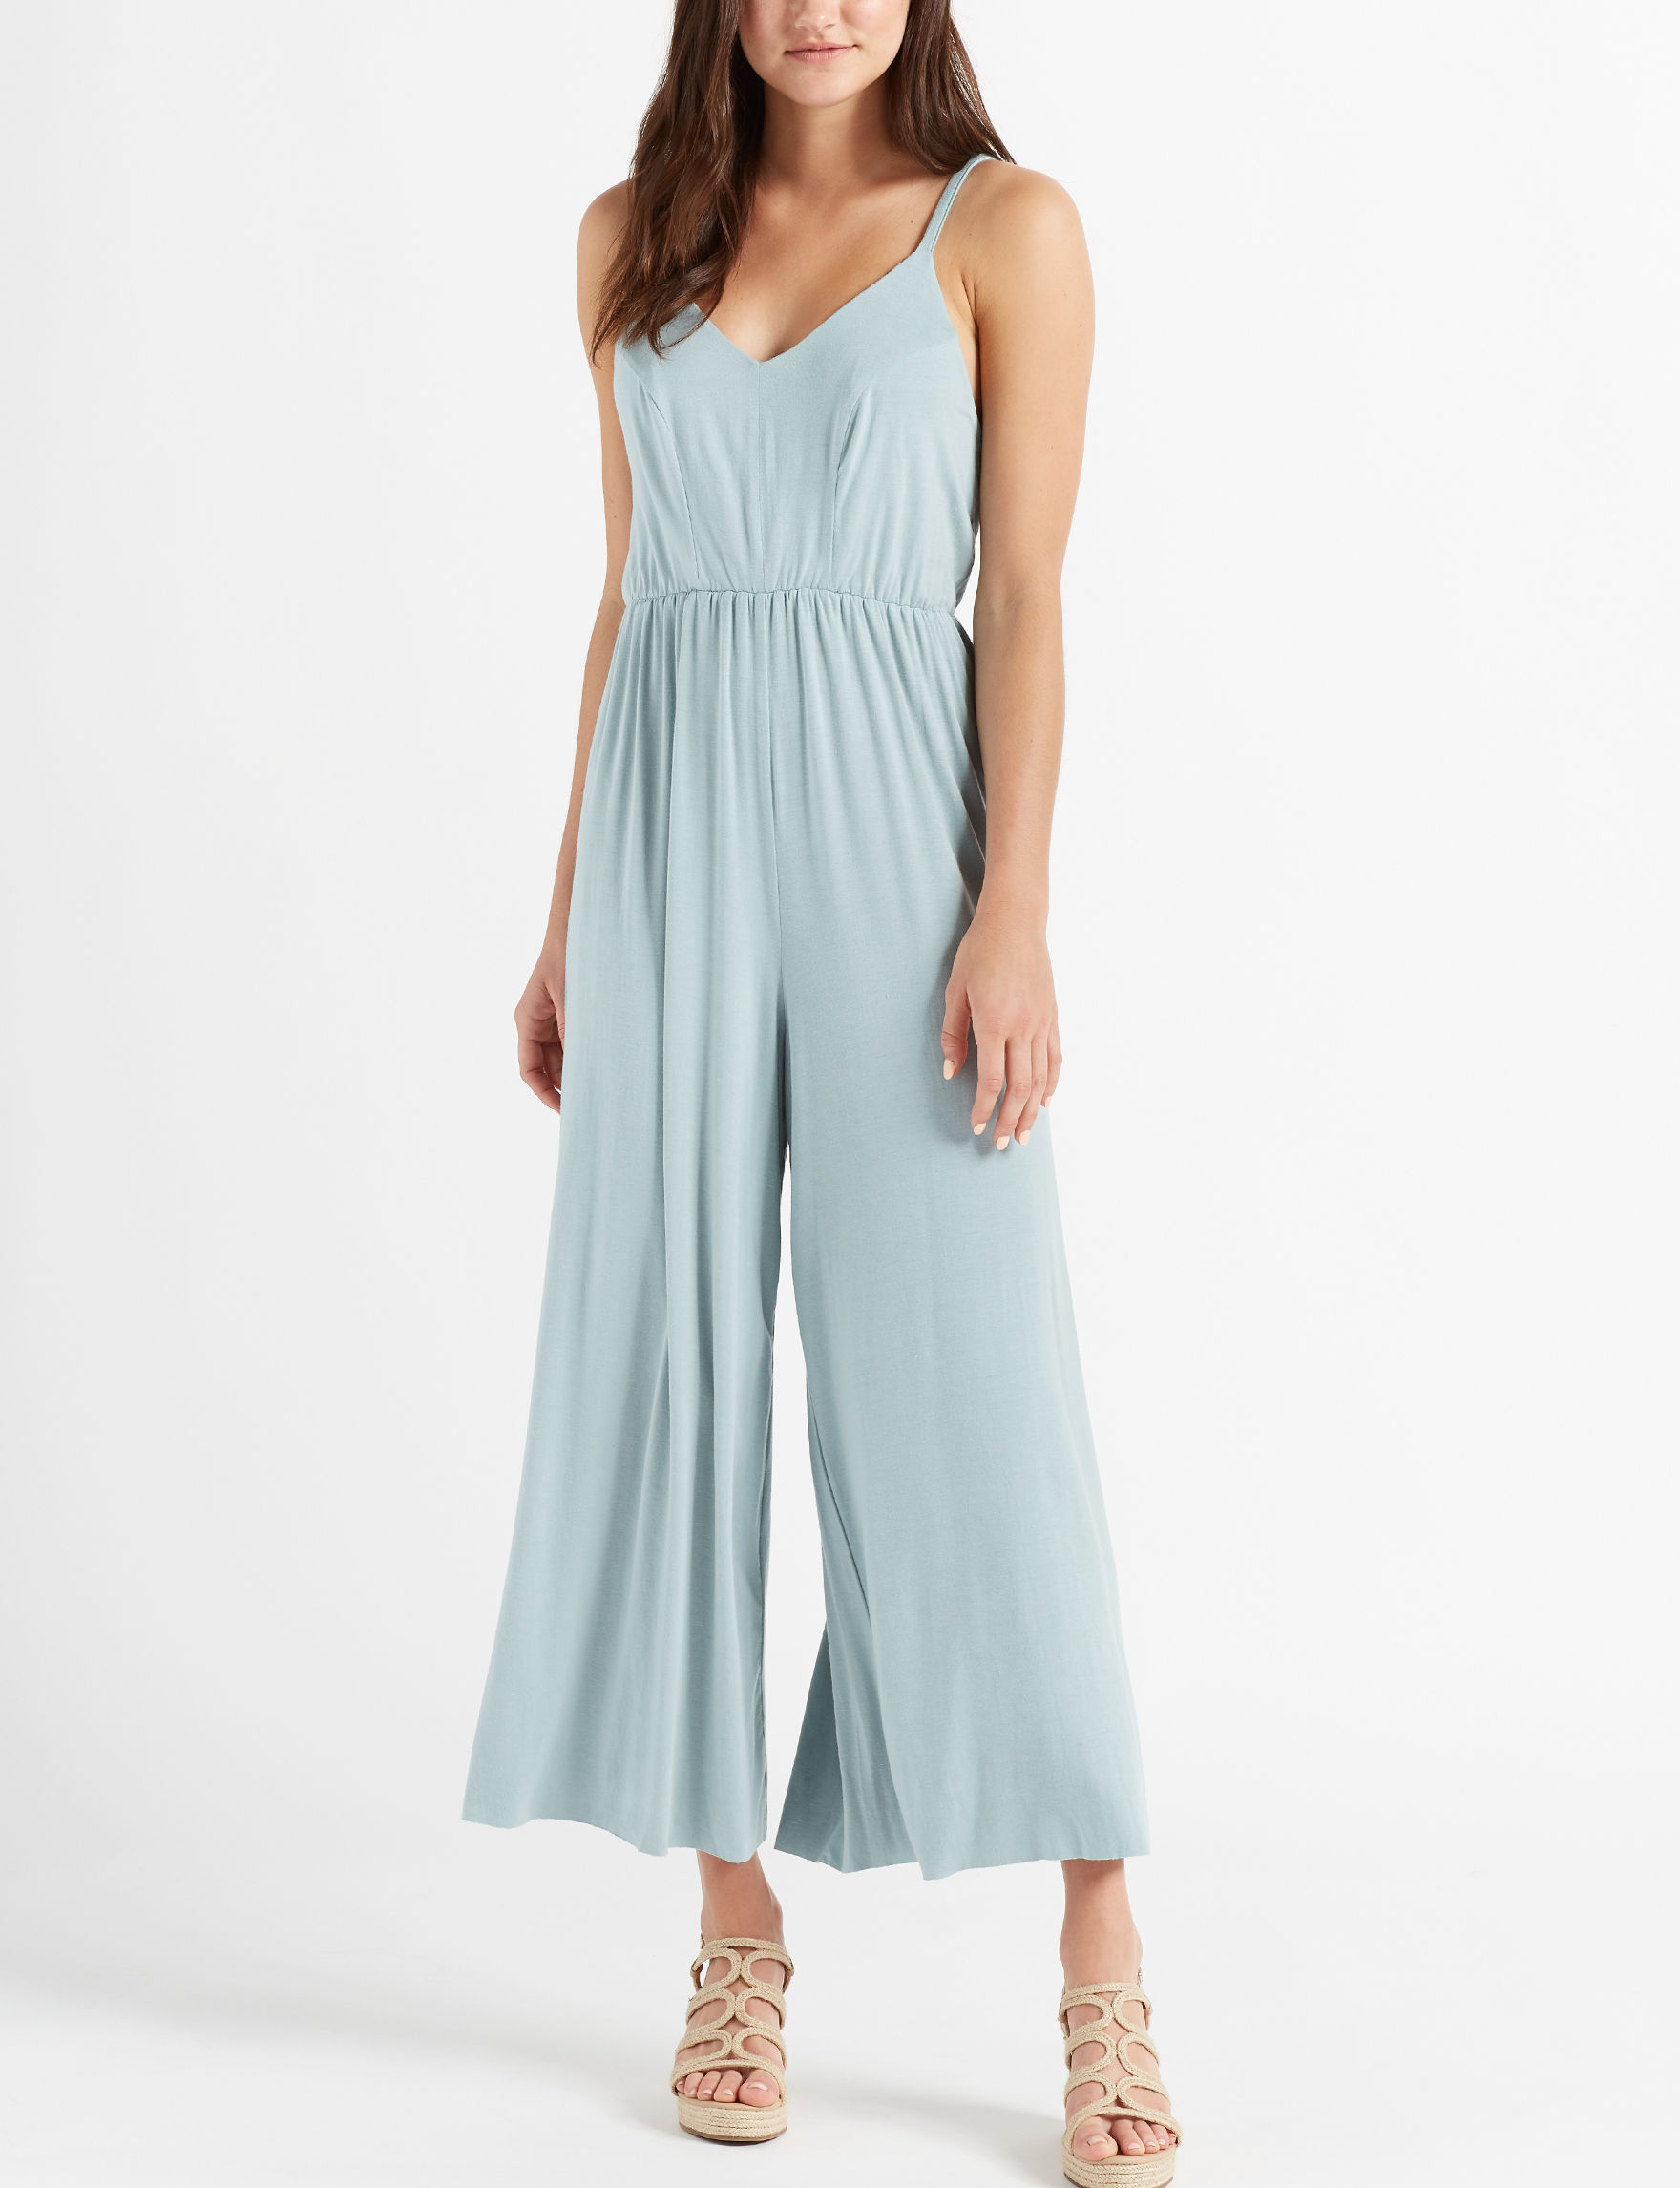 Wishful Park Blue Everyday & Casual